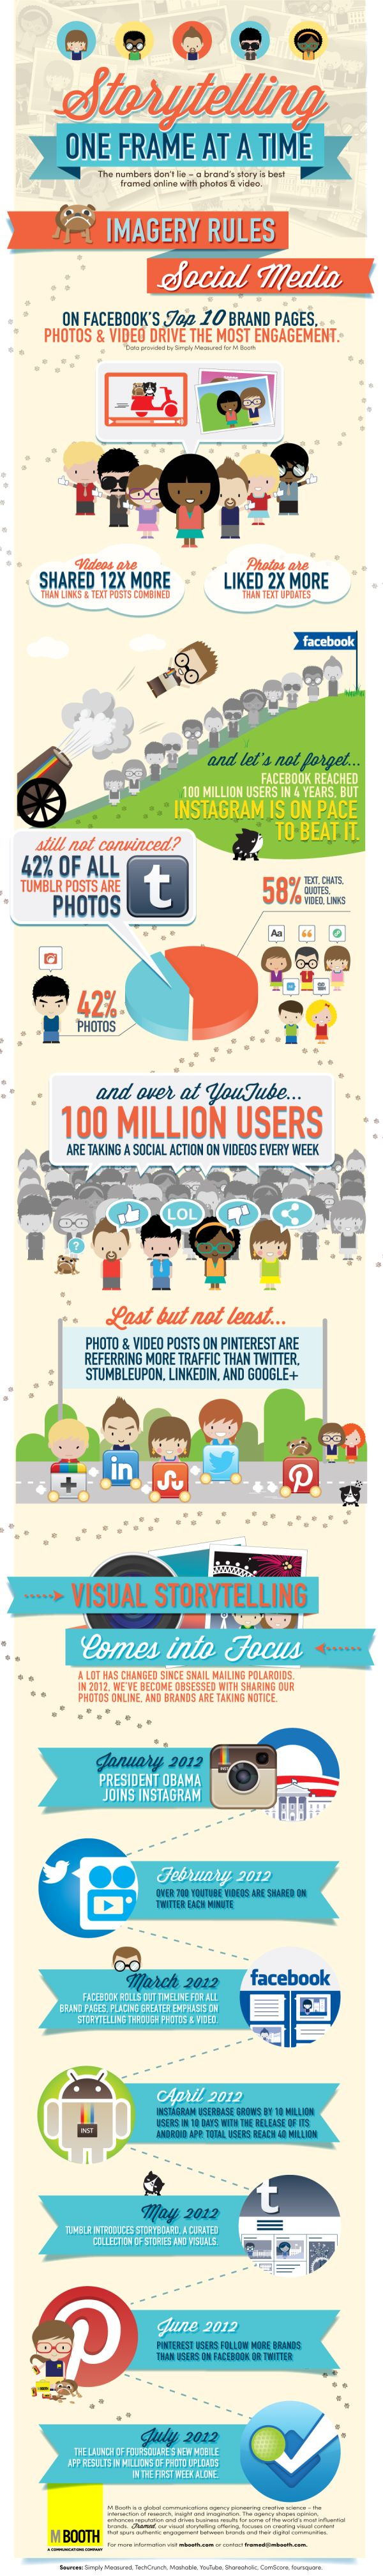 Storytelling: Visual Content Trumps Text in Driving Social Media Engagement #infographic